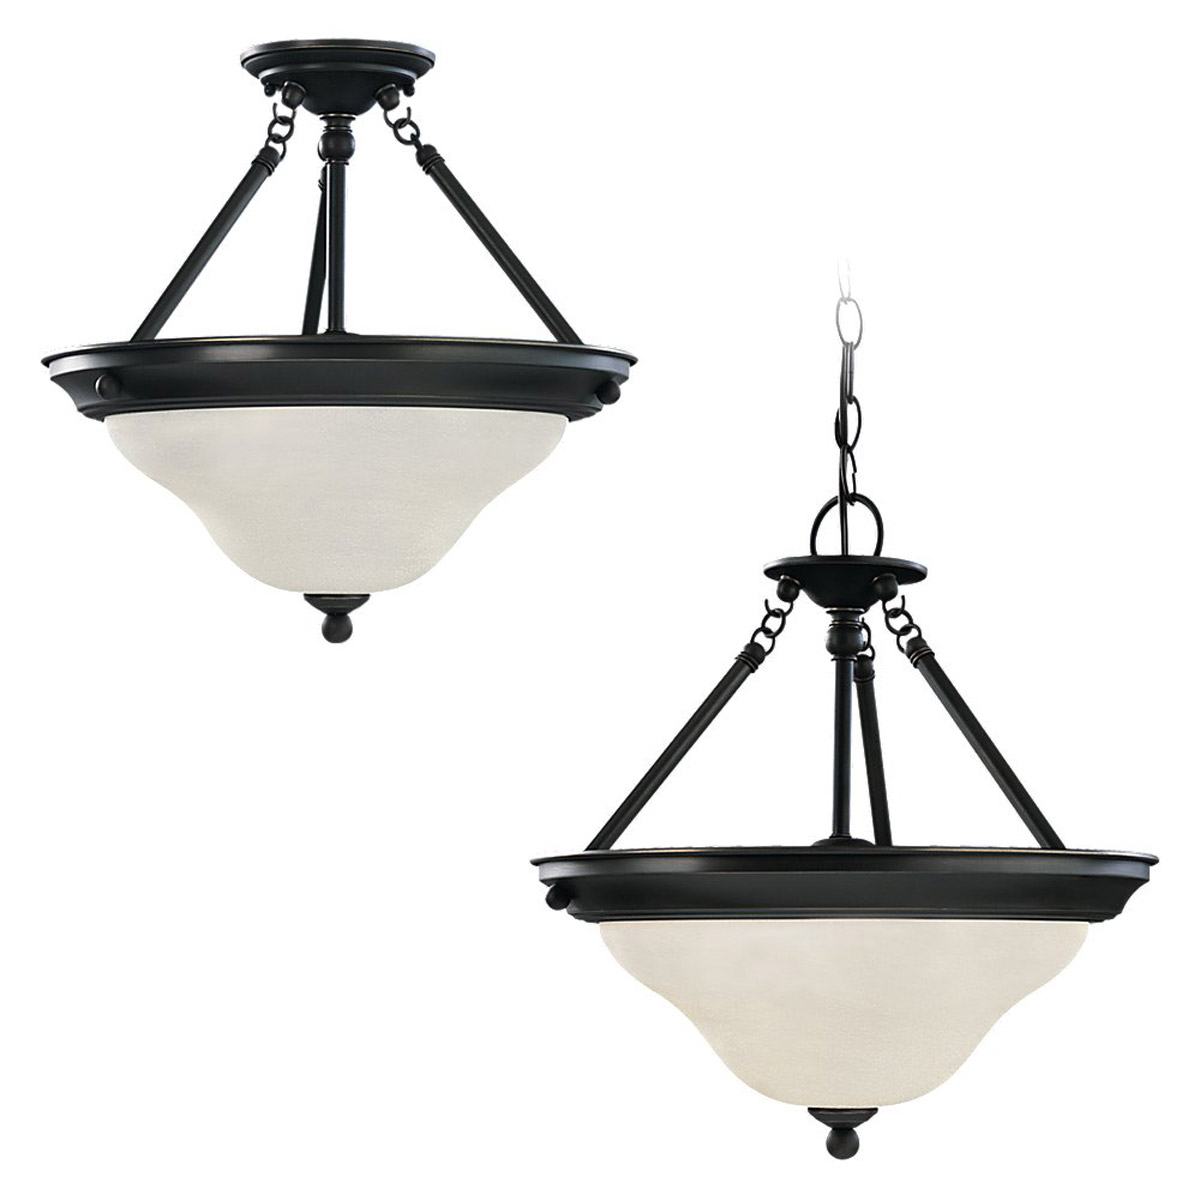 Sea Gull Lighting Sussex 3 Light Pendant Convertible in Heirloom Bronze 69562BLE-782 photo